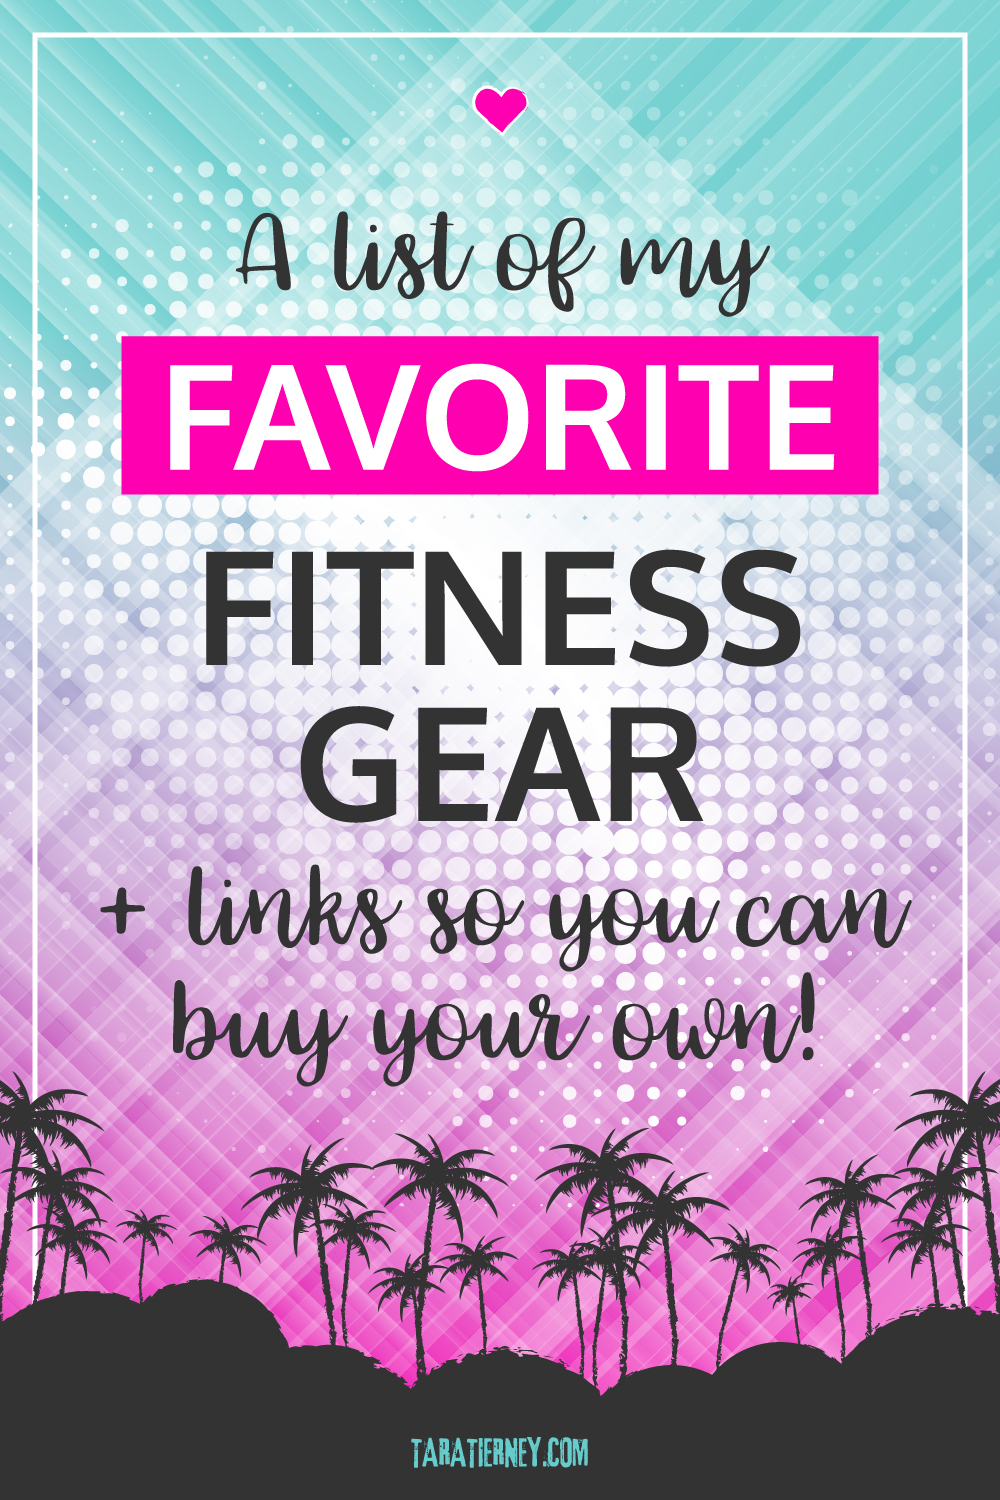 A list of my favorite fitness gear + links so you can buy your own!